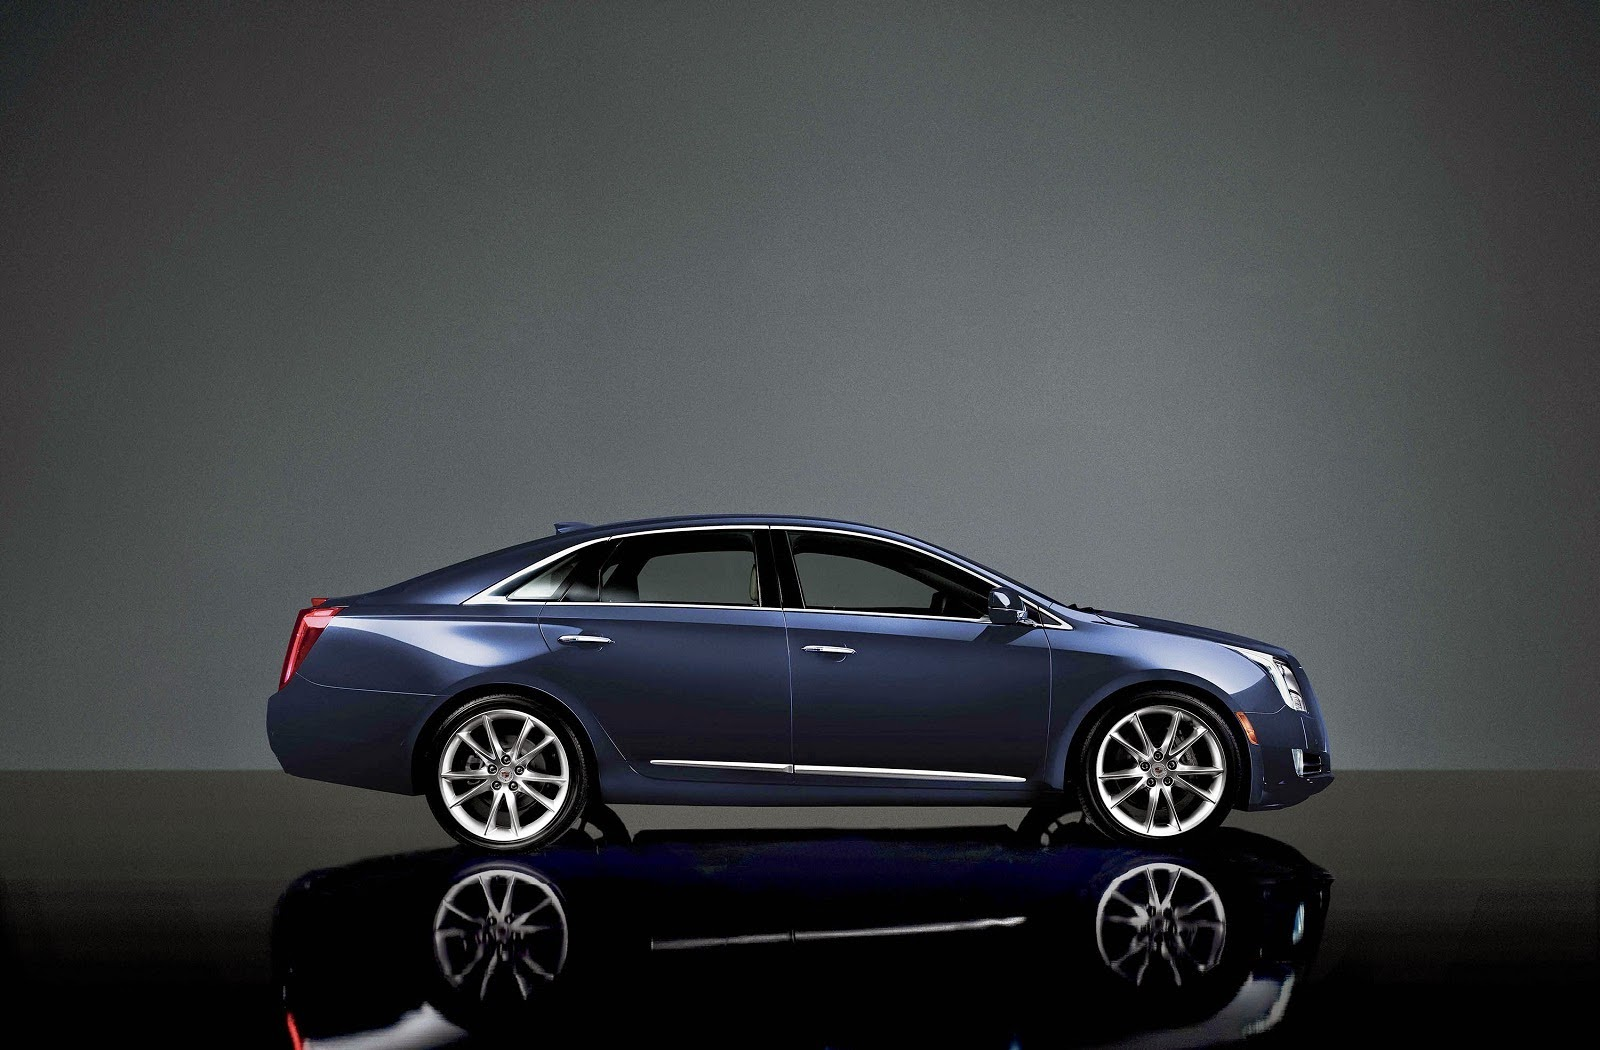 2015 cadillac xts twin turbo 3 6l v 6 410hp 306kw car reviews new car pictures for 2018 2019. Black Bedroom Furniture Sets. Home Design Ideas